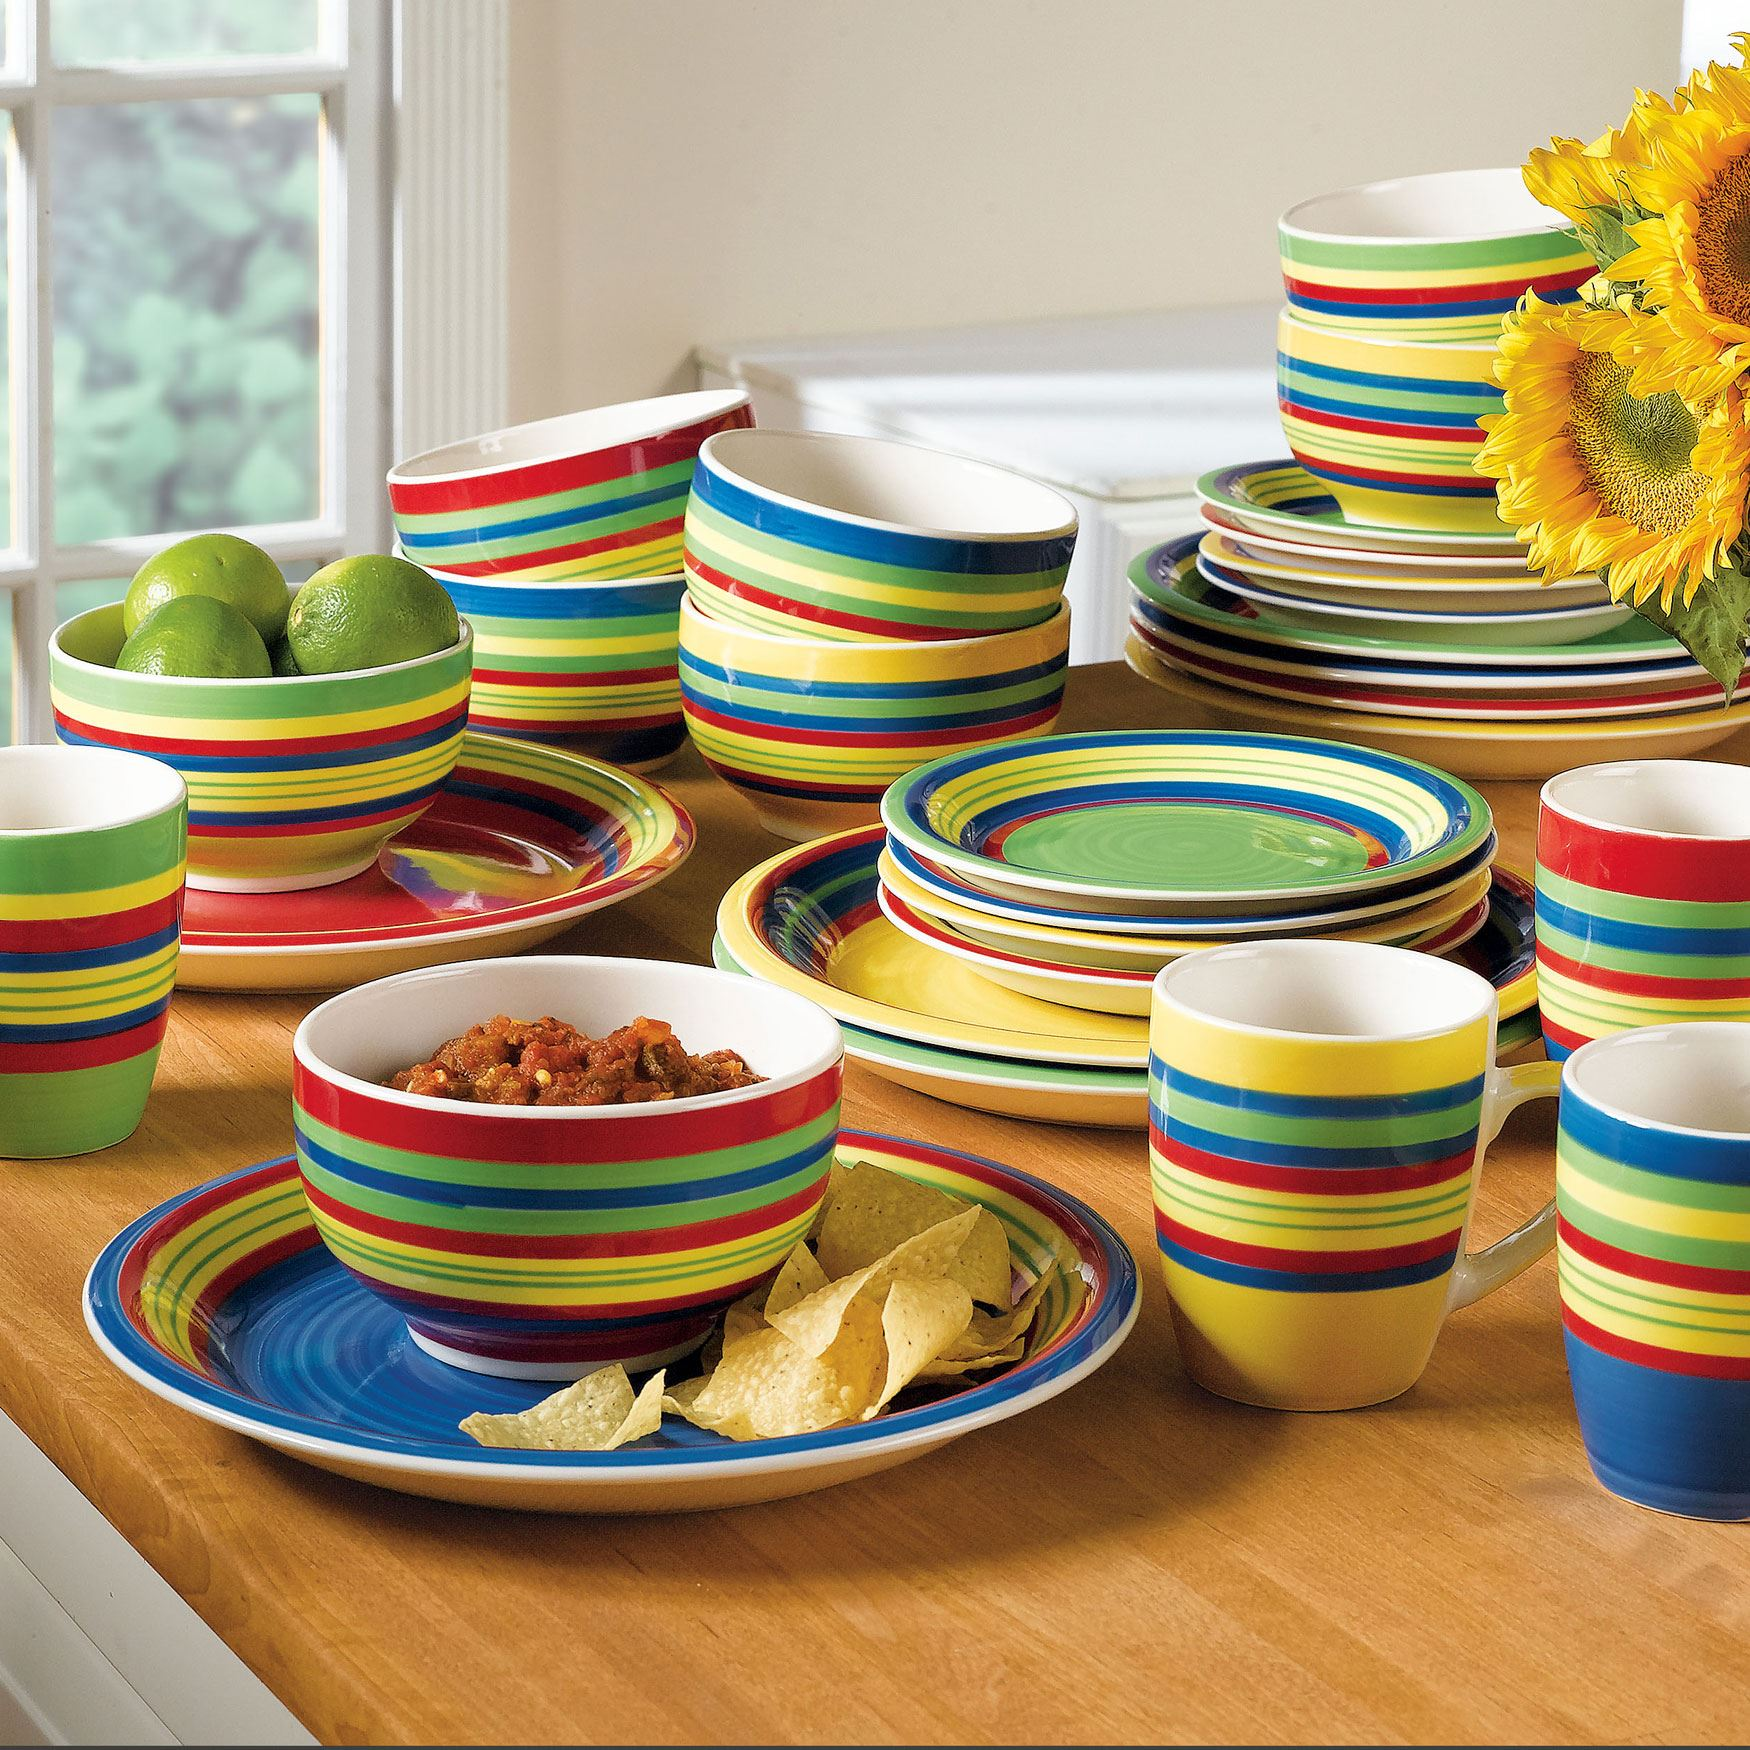 Captivating stoneware dishes for kitchen and dining sets ideas with stoneware dishes made in usa